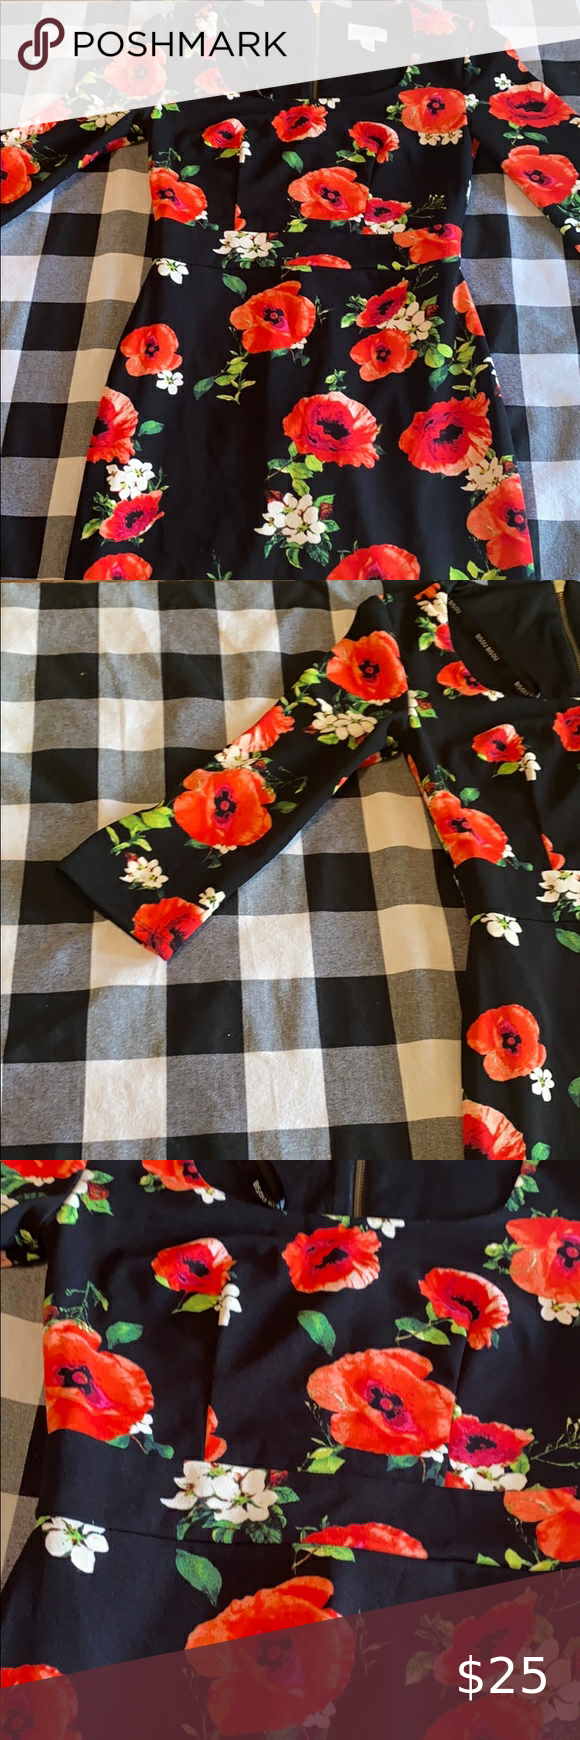 Black Dress With Flower Pattern Red And White Flowers Black Dress Cute Black Dress [ 1740 x 580 Pixel ]